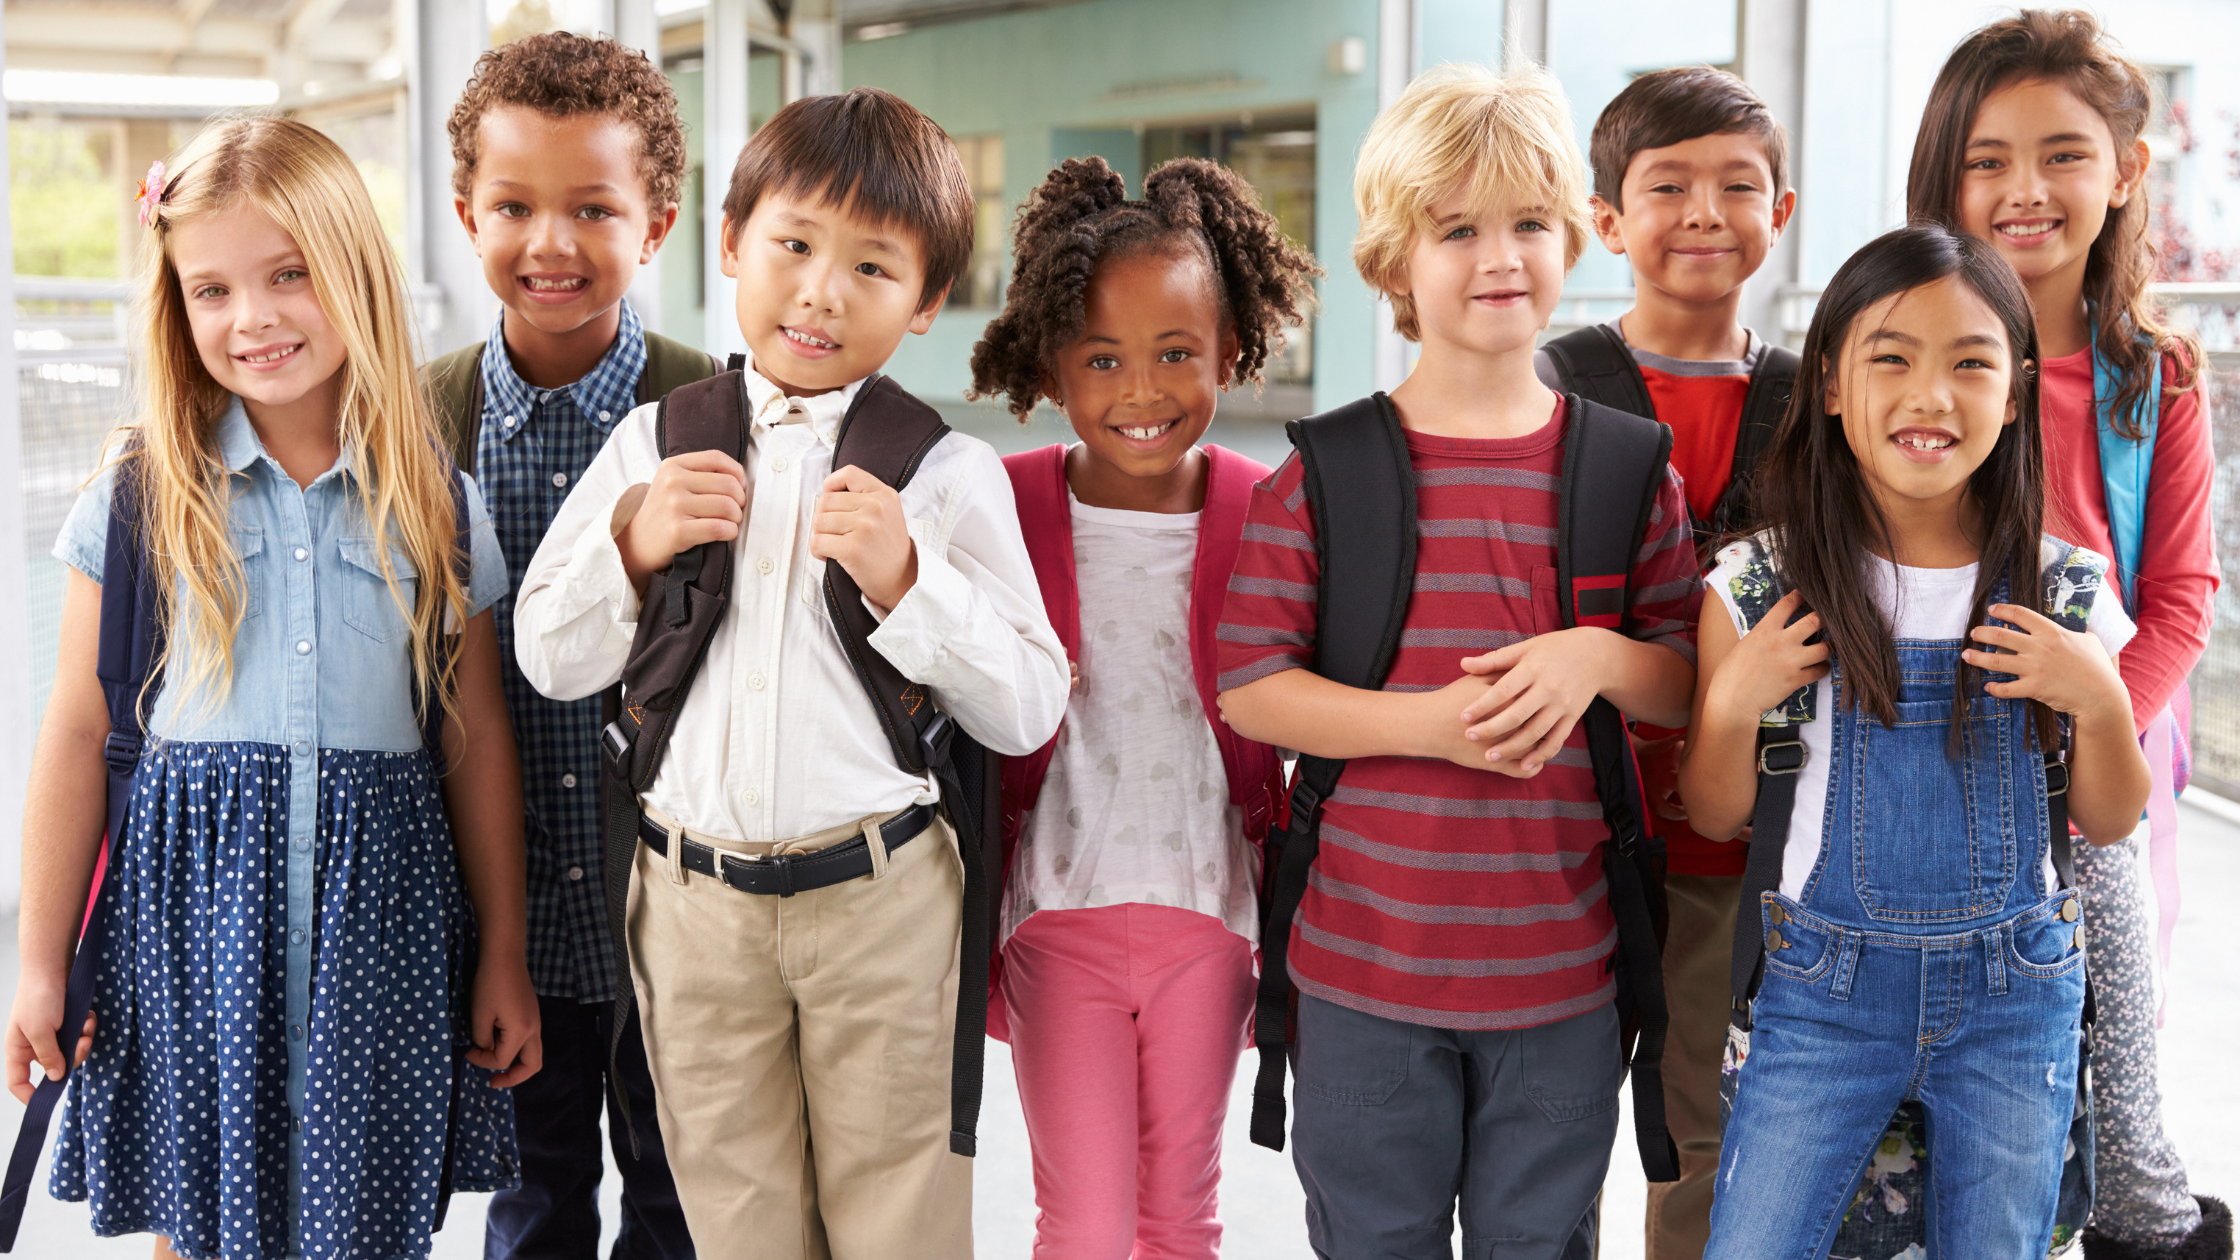 diverse children standing together